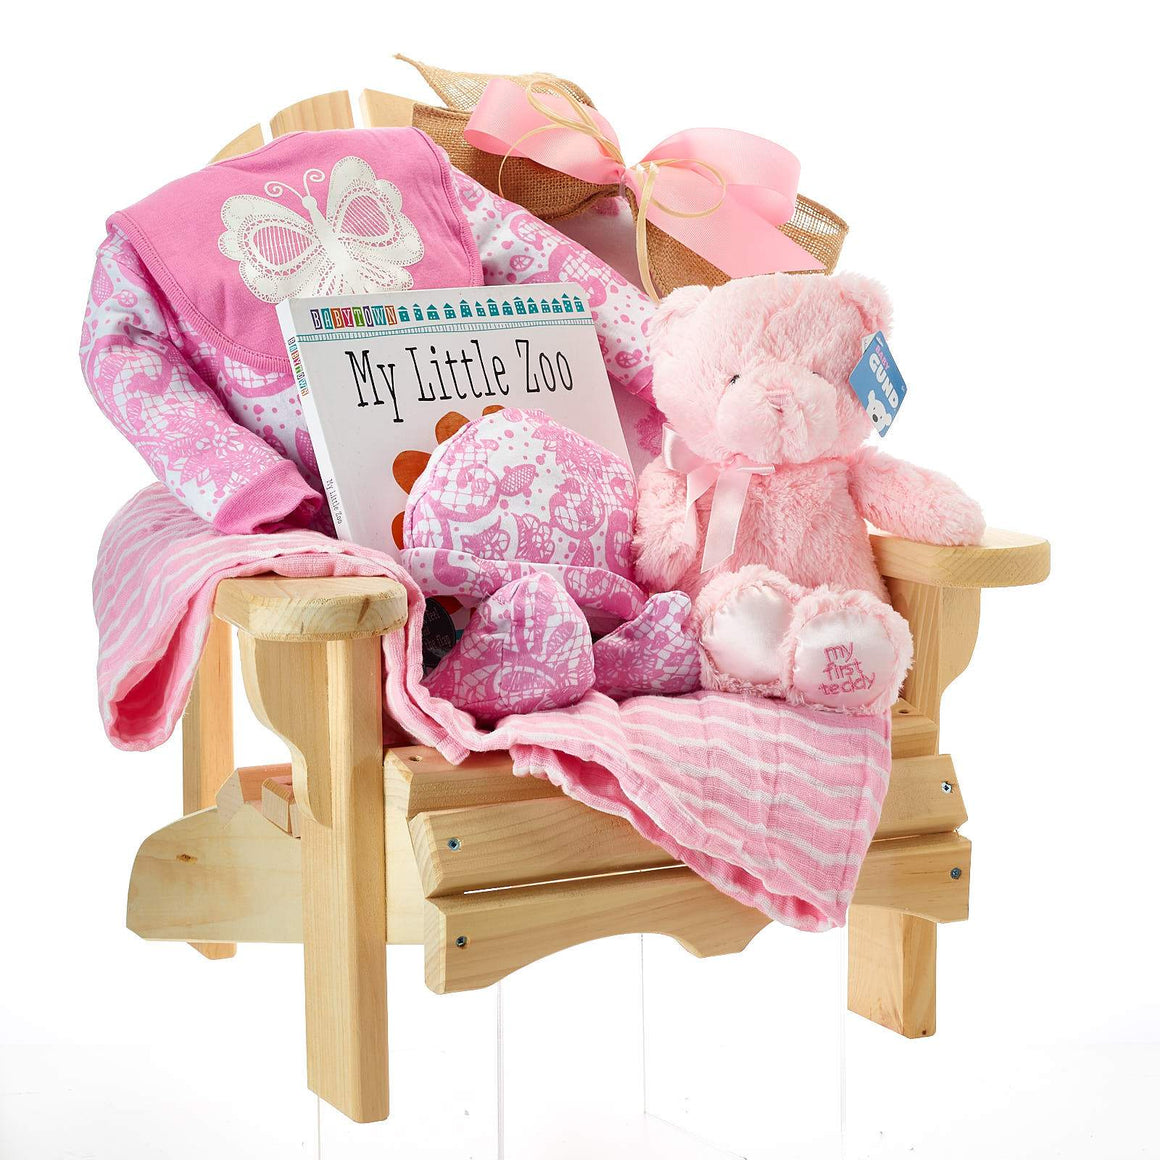 d690b328b56dc Baby Gift Baskets FREE Toronto Same Day Delivery